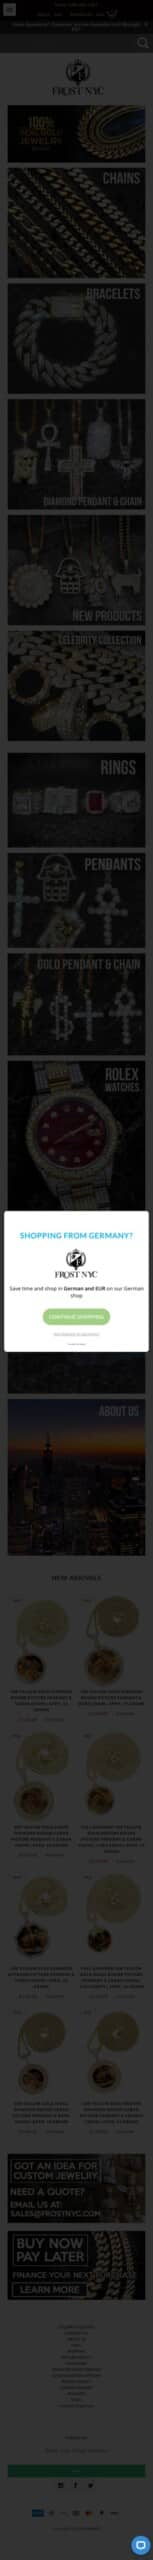 frostnyc.com Coupon